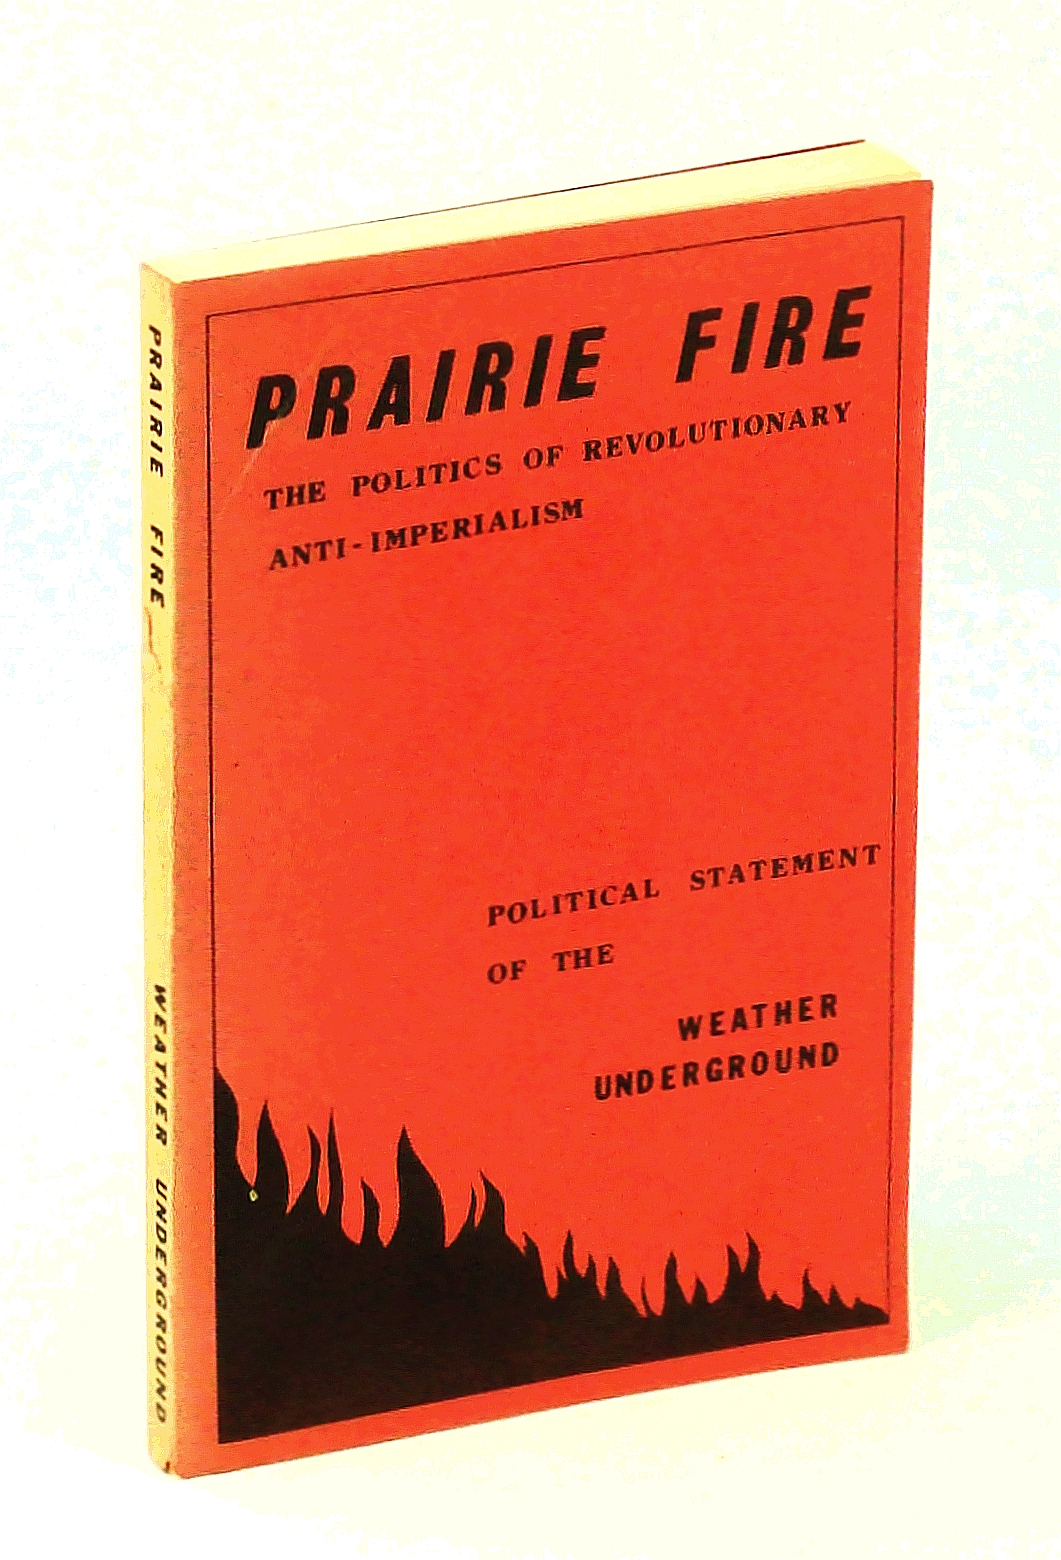 Image for Prairie Fire - The Politics of Revolutionary Anti-Imperialism: The Political Statement of the Weather Underground